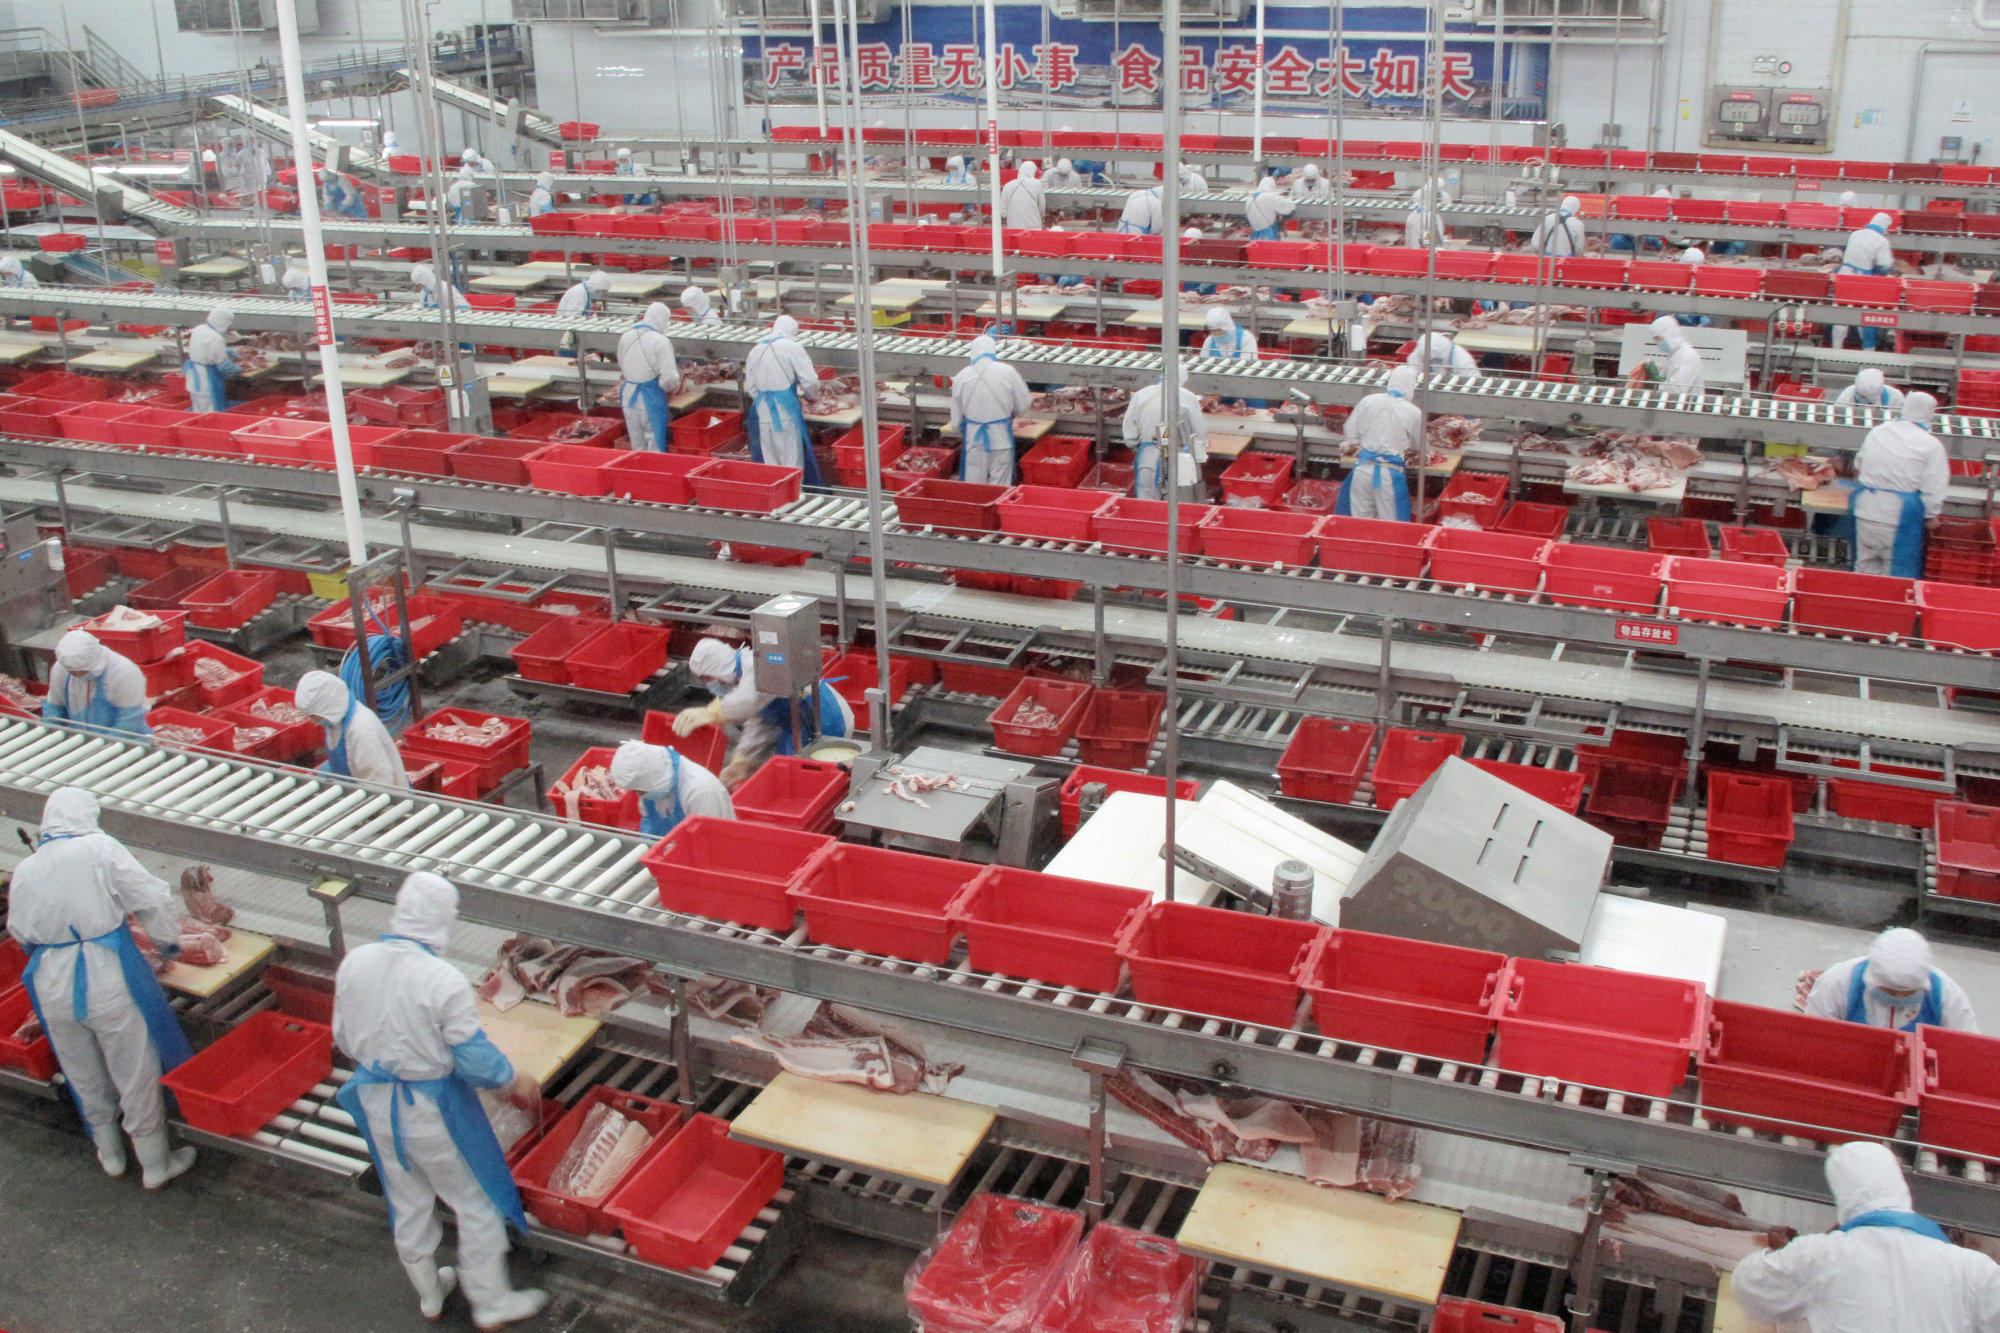 Workers sort cuts of fresh meat in a processing plant owned by pork producer WH Group in Zhengzhou, Henan province, China, in November 2017. | REUTERS